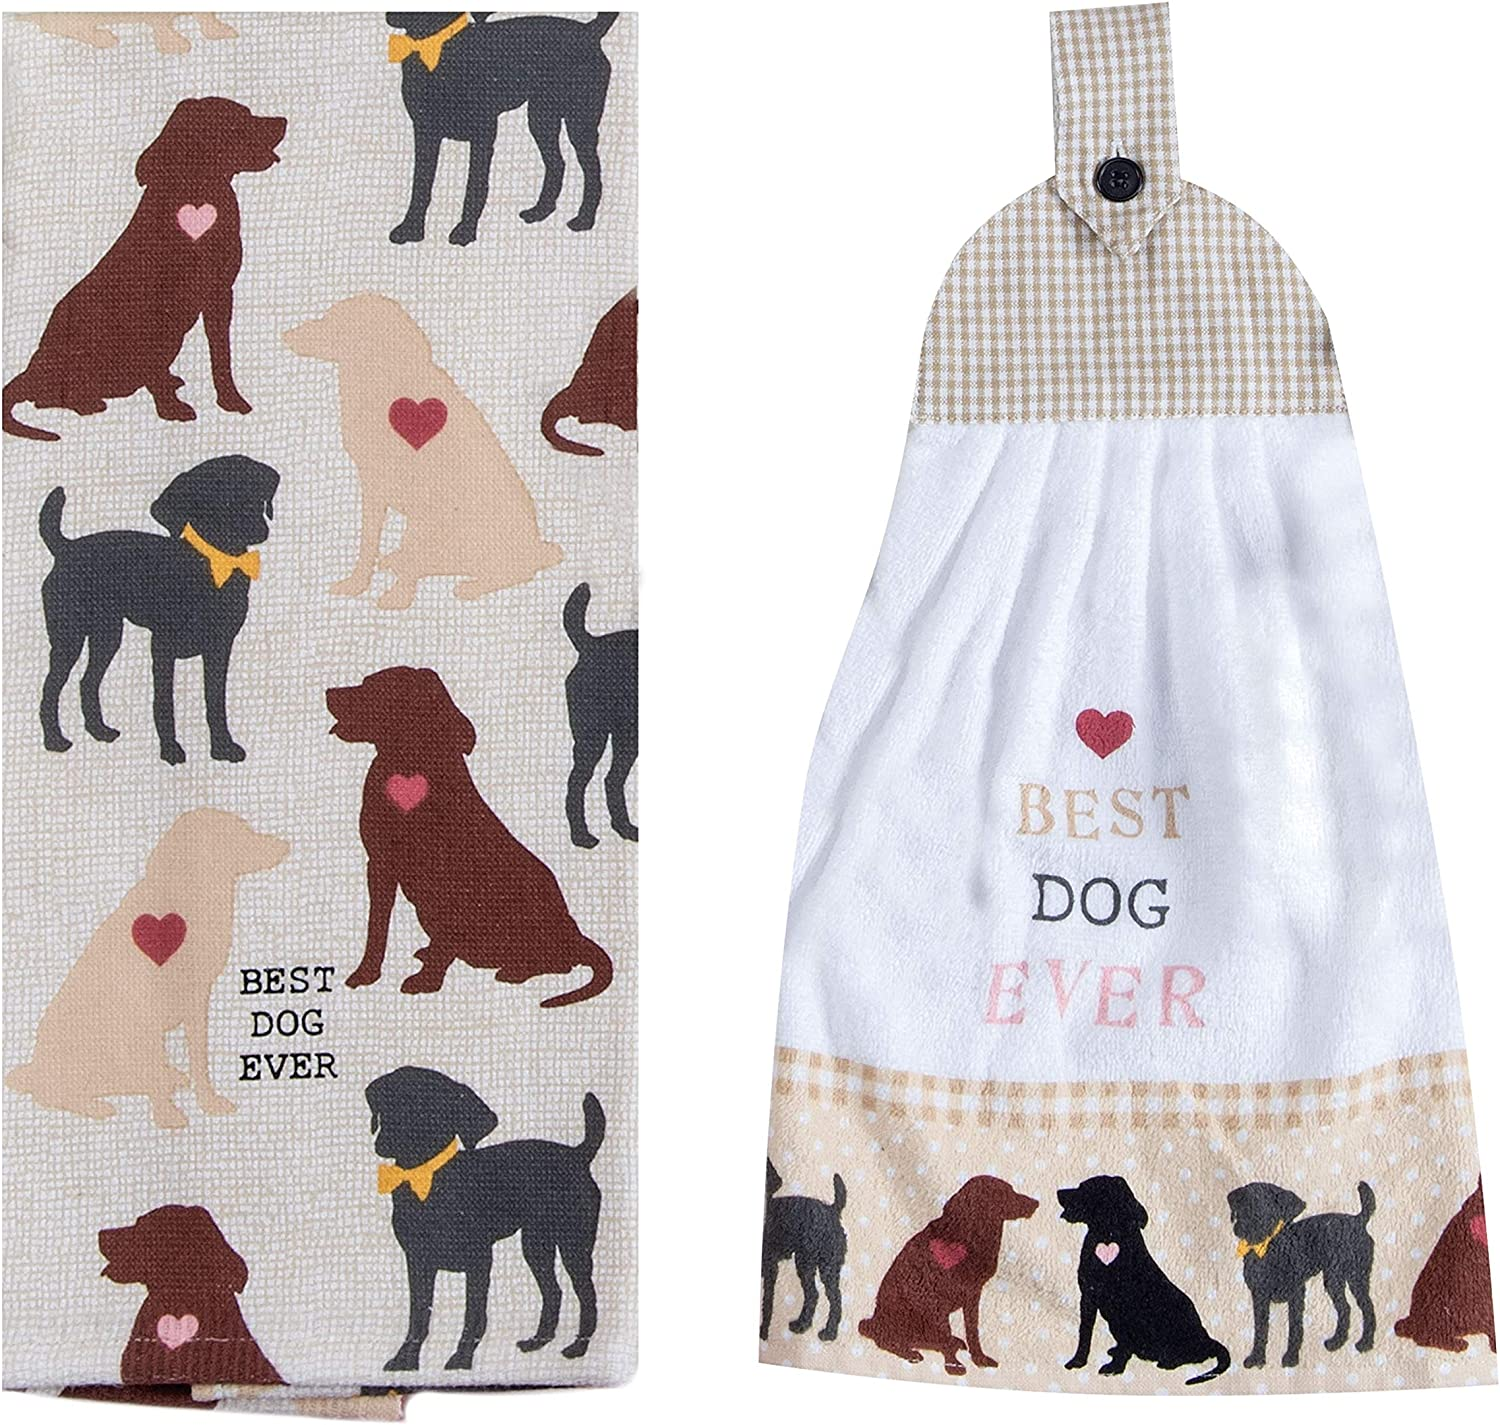 Dog Lover Dish Towels, 1 Tea Towel, 1 Terry Tie Towel, 1 Dishwasher Magnet